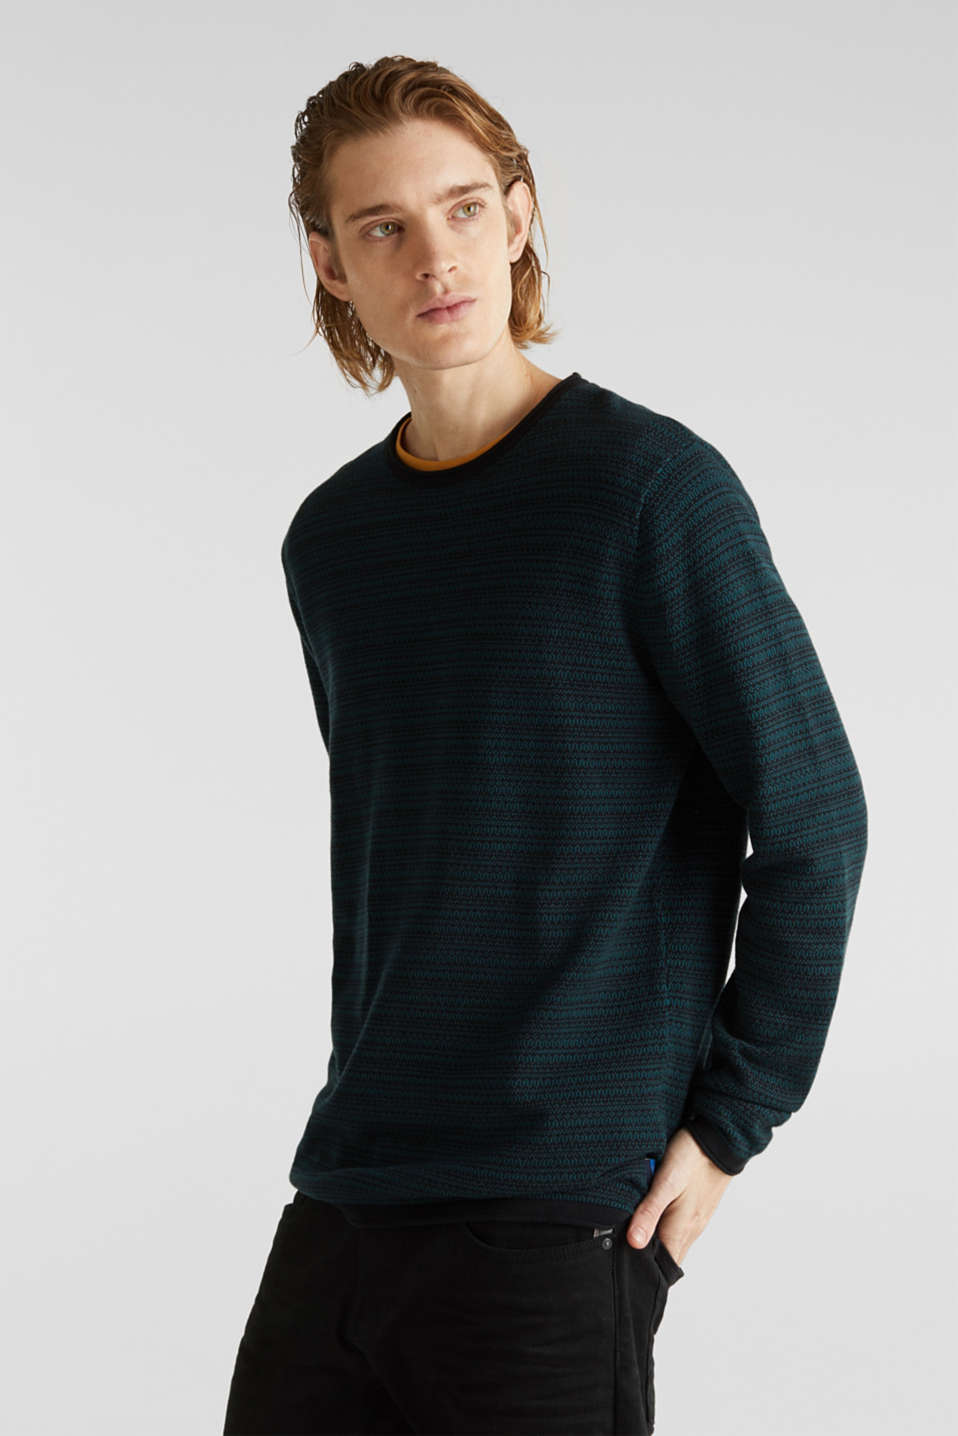 Jacquard jumper made of pure cotton, DARK TEAL GREEN, detail image number 0